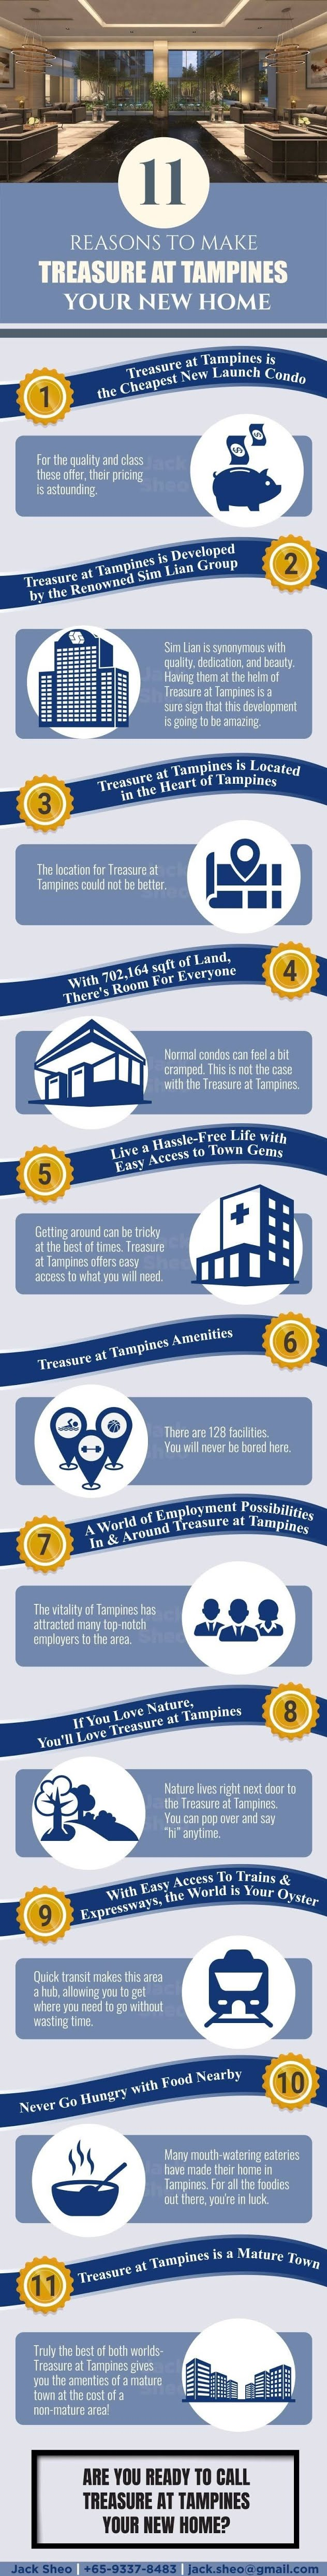 11 Reasons To Make This Your New Home #infographic